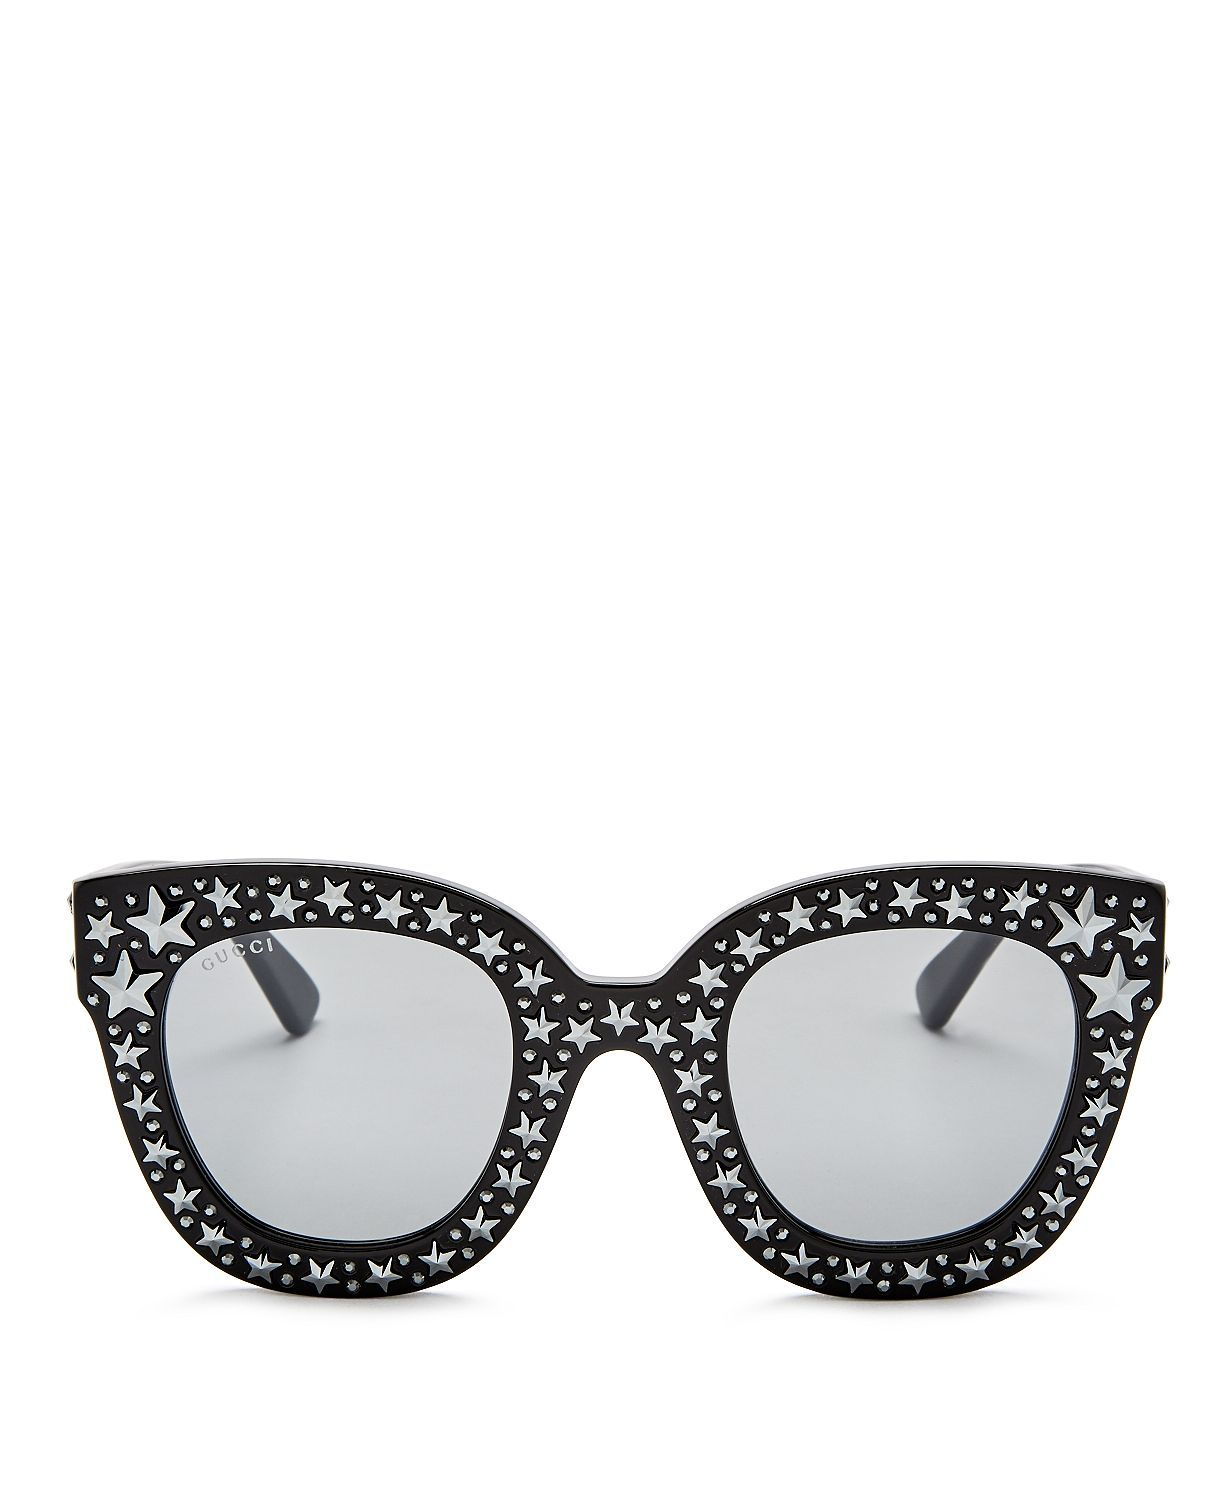 Gucci Oversized Swarvoski Stars Cat Eye Sunglasses, 50mm | Bloomingdales's